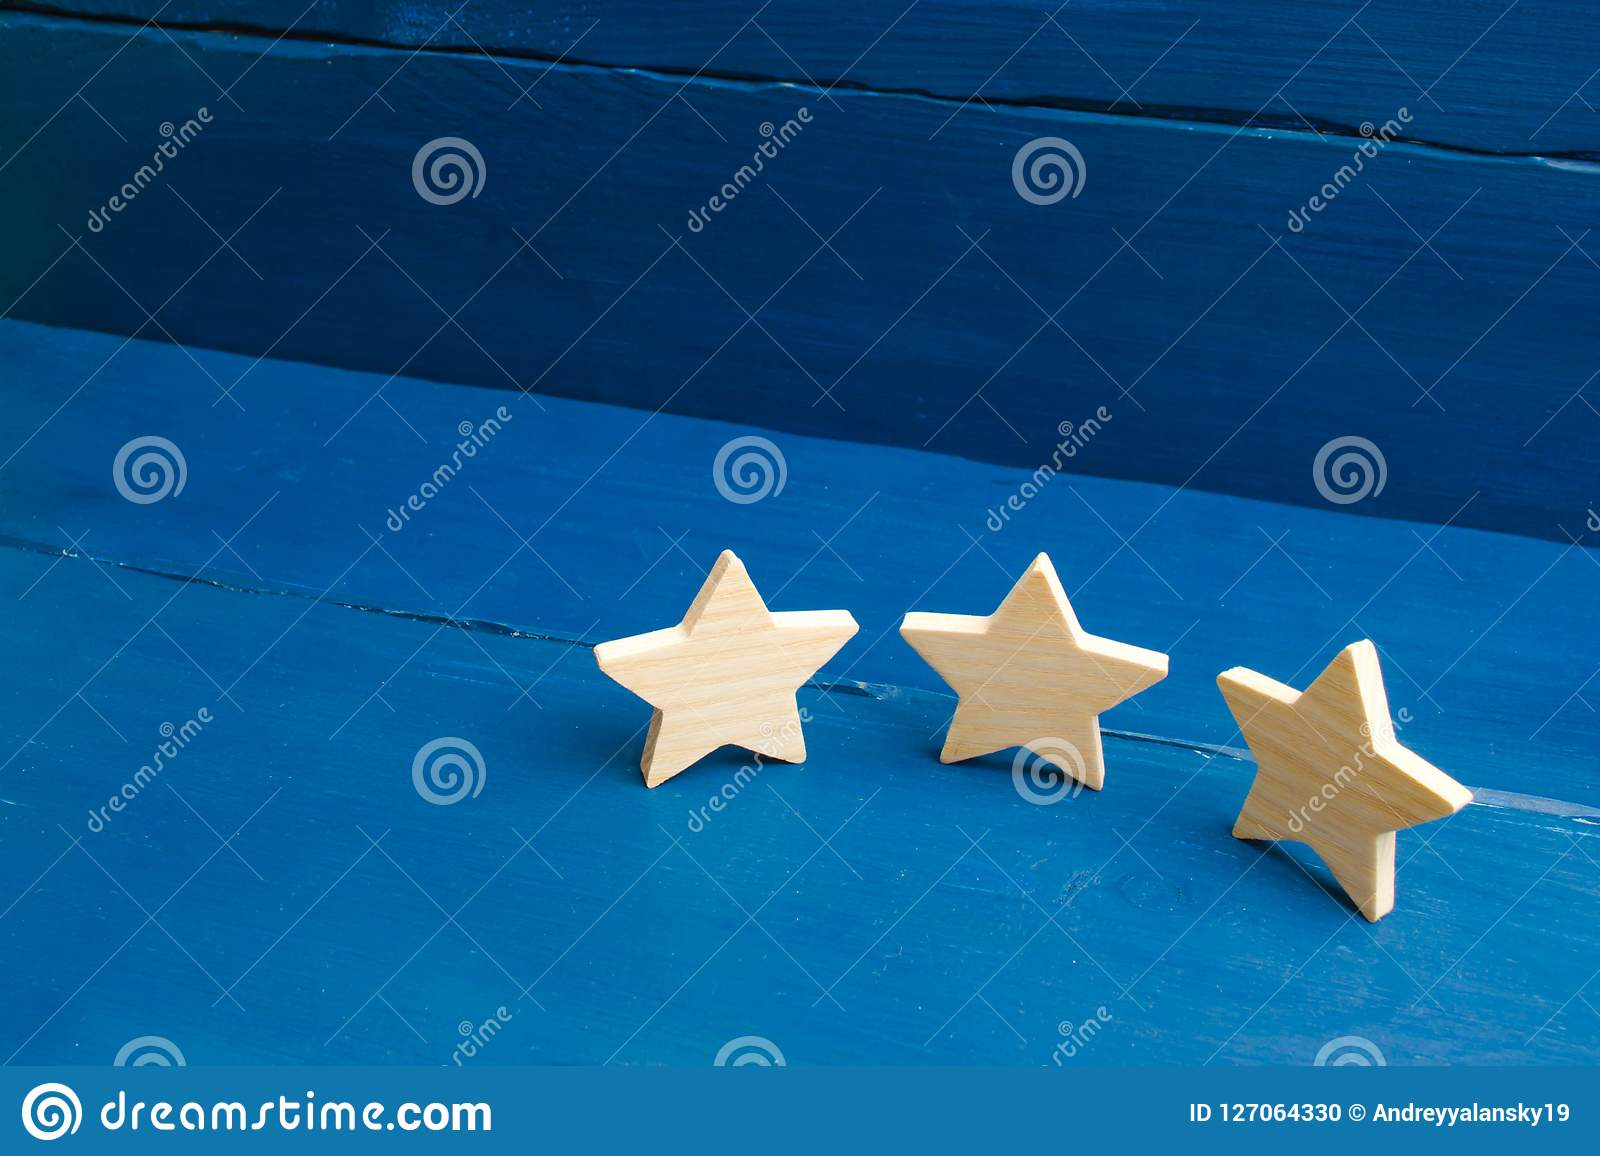 The rating of the hotel, restaurant, mobile application. Three stars on a blue background. The concept of rating and evaluation.